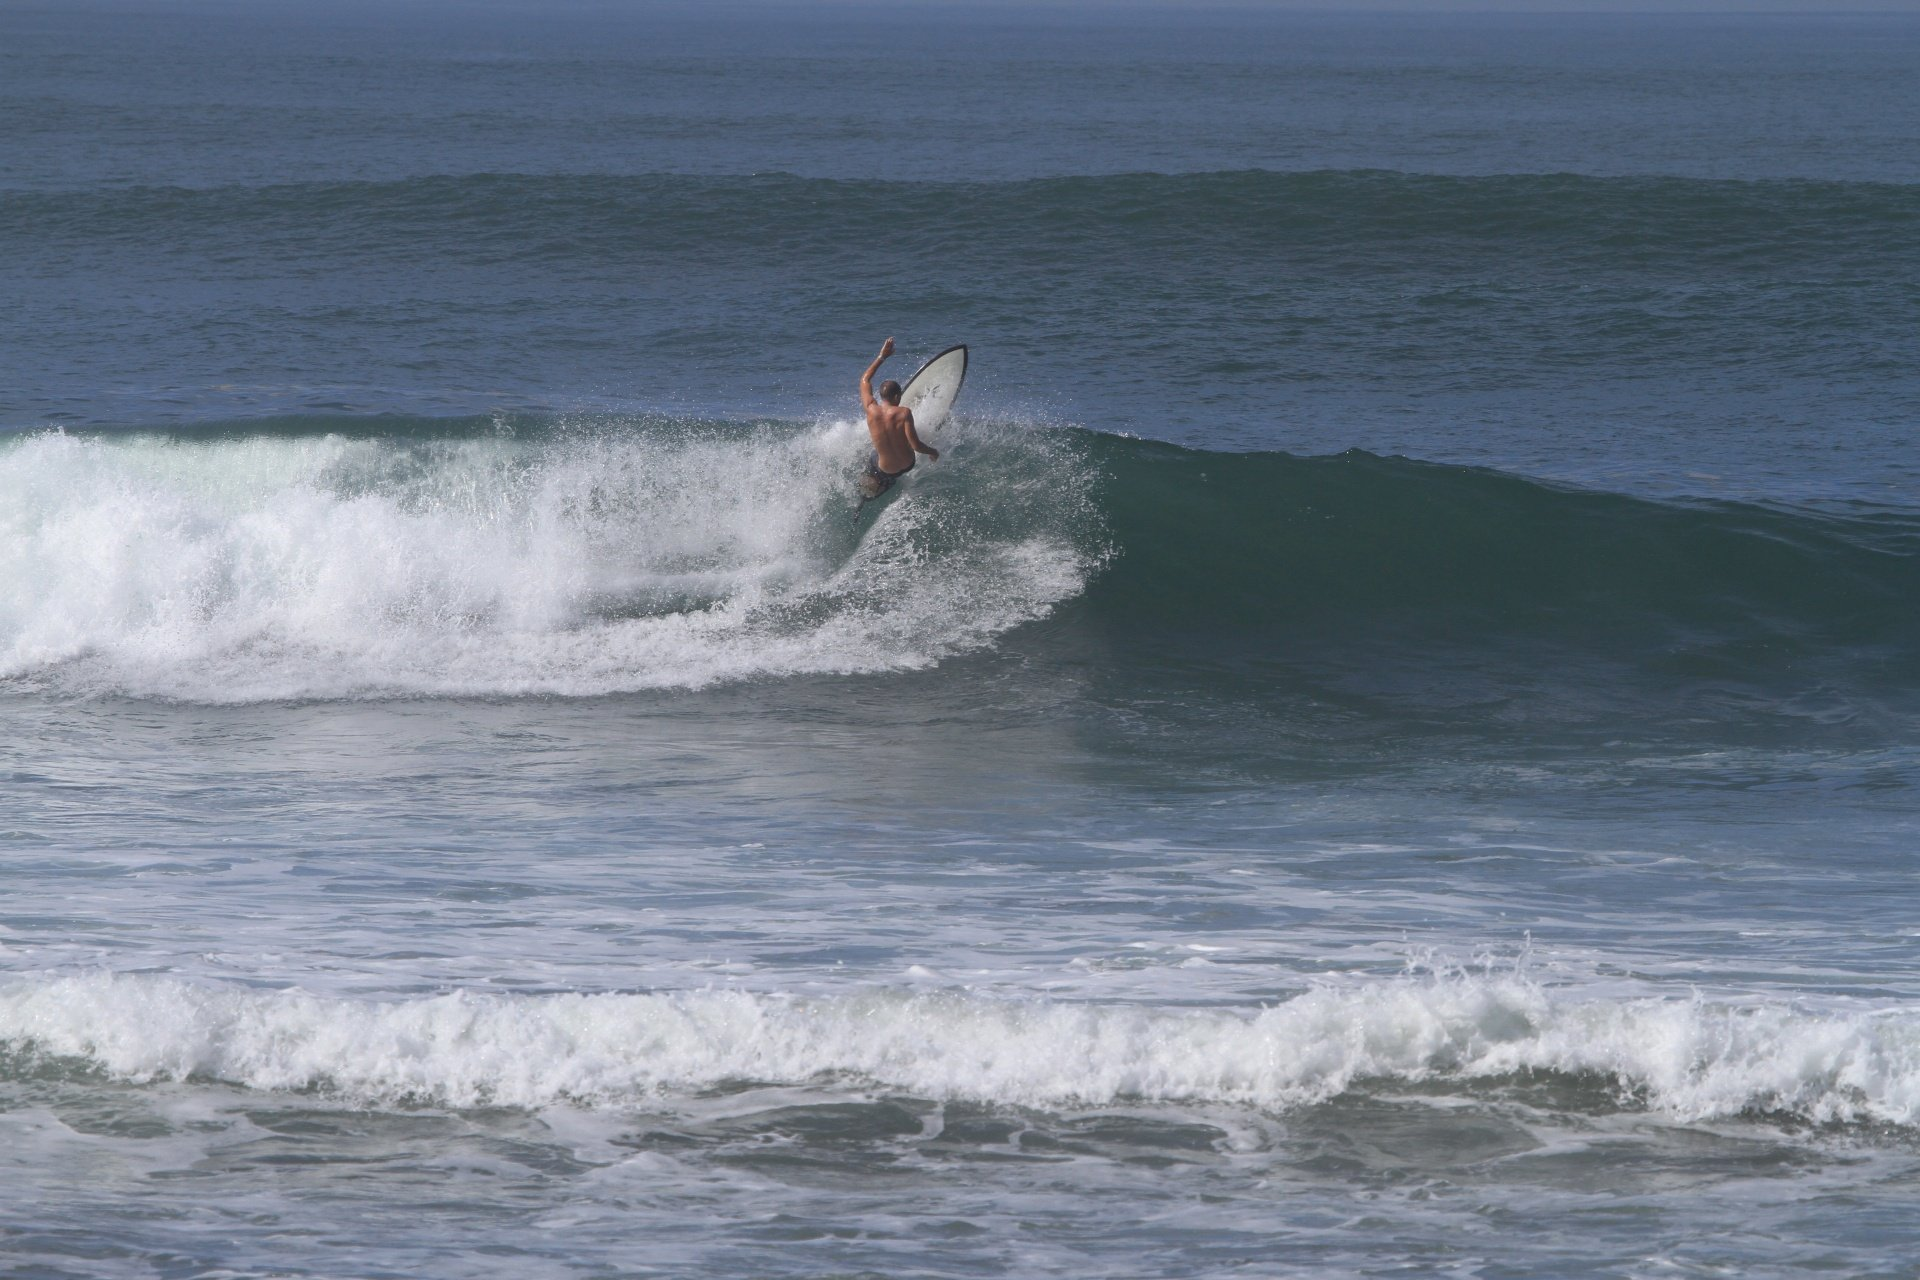 Daniil Klubniy's photo of Balian